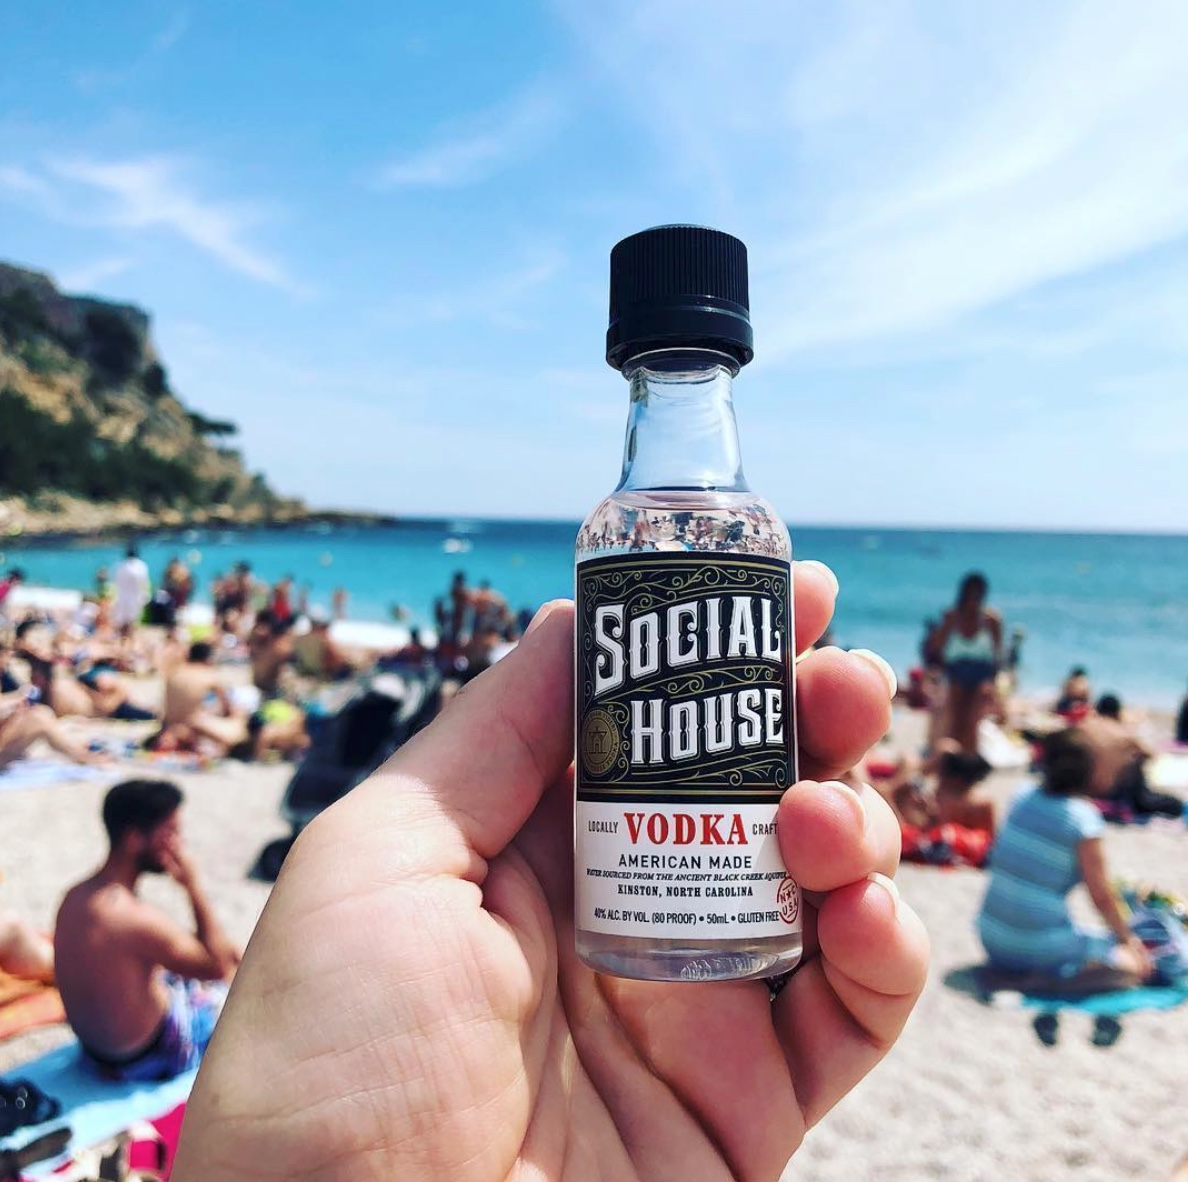 Social House in Cassis